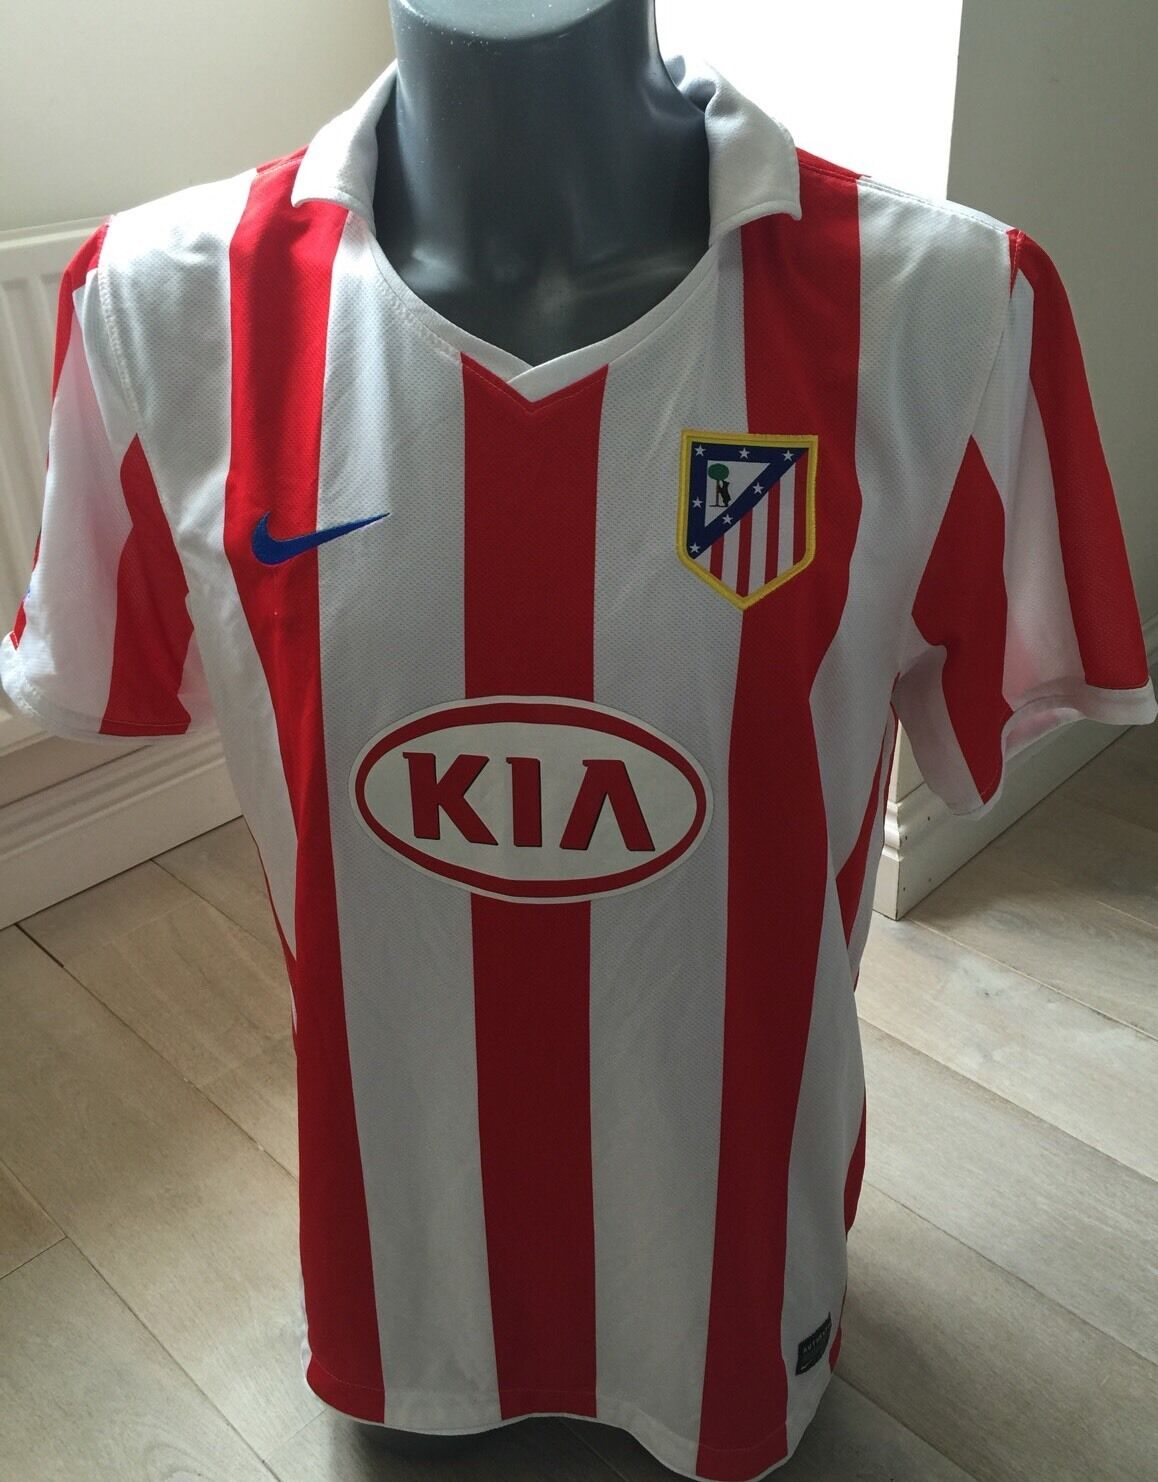 Authentic Atletico Madrid 2010-11 Men's Large Home Football Shirt EXC COND